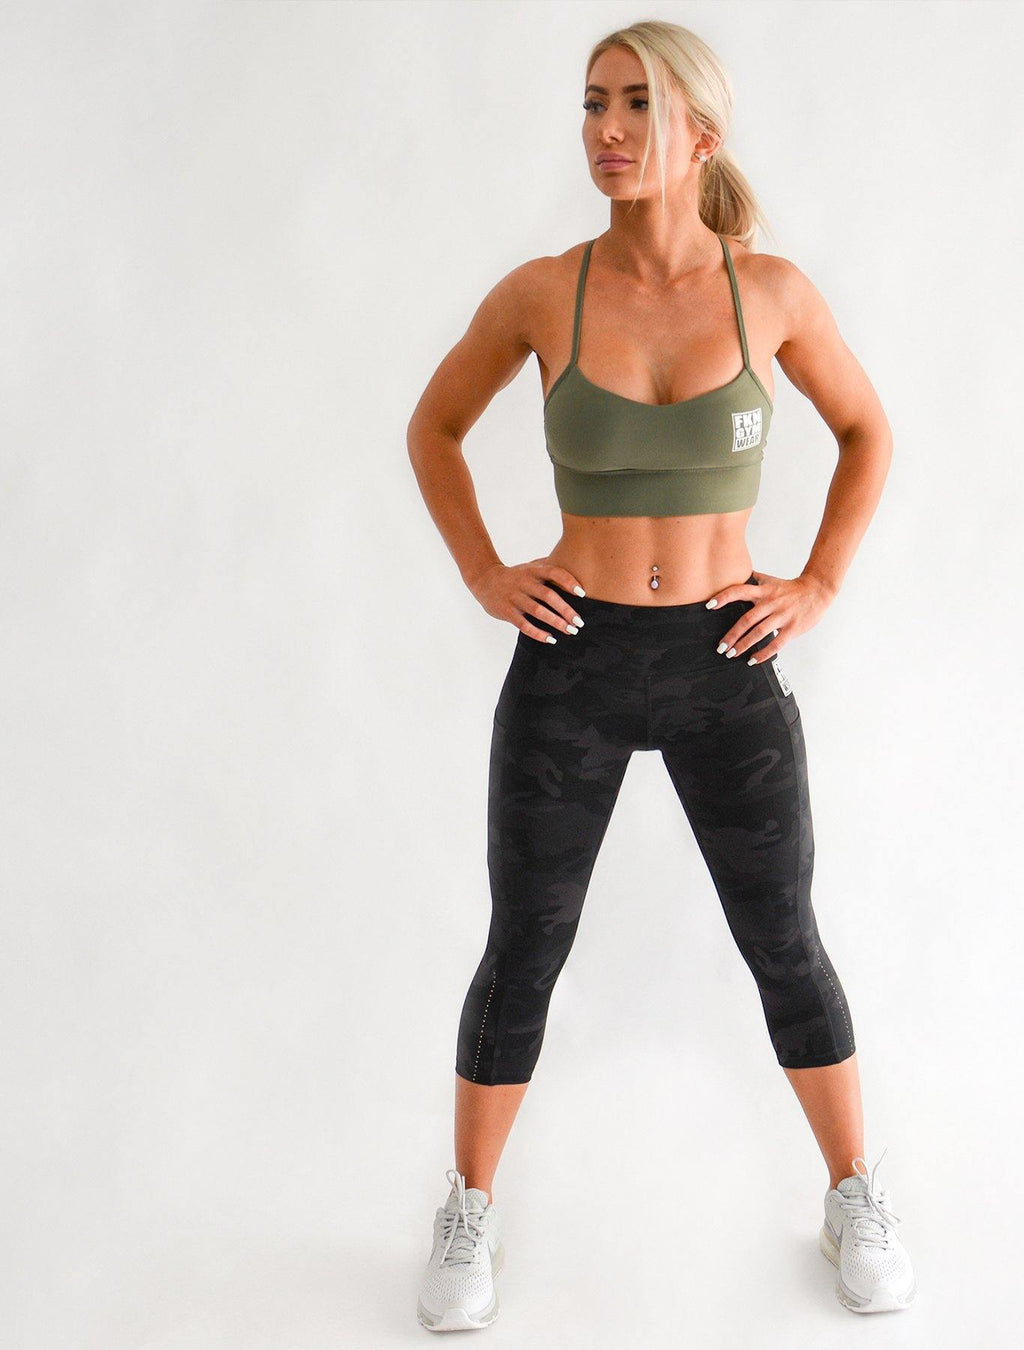 Workout Set | Khaki Crop & 7/8 Camo Leggings - FKN Gym Wear